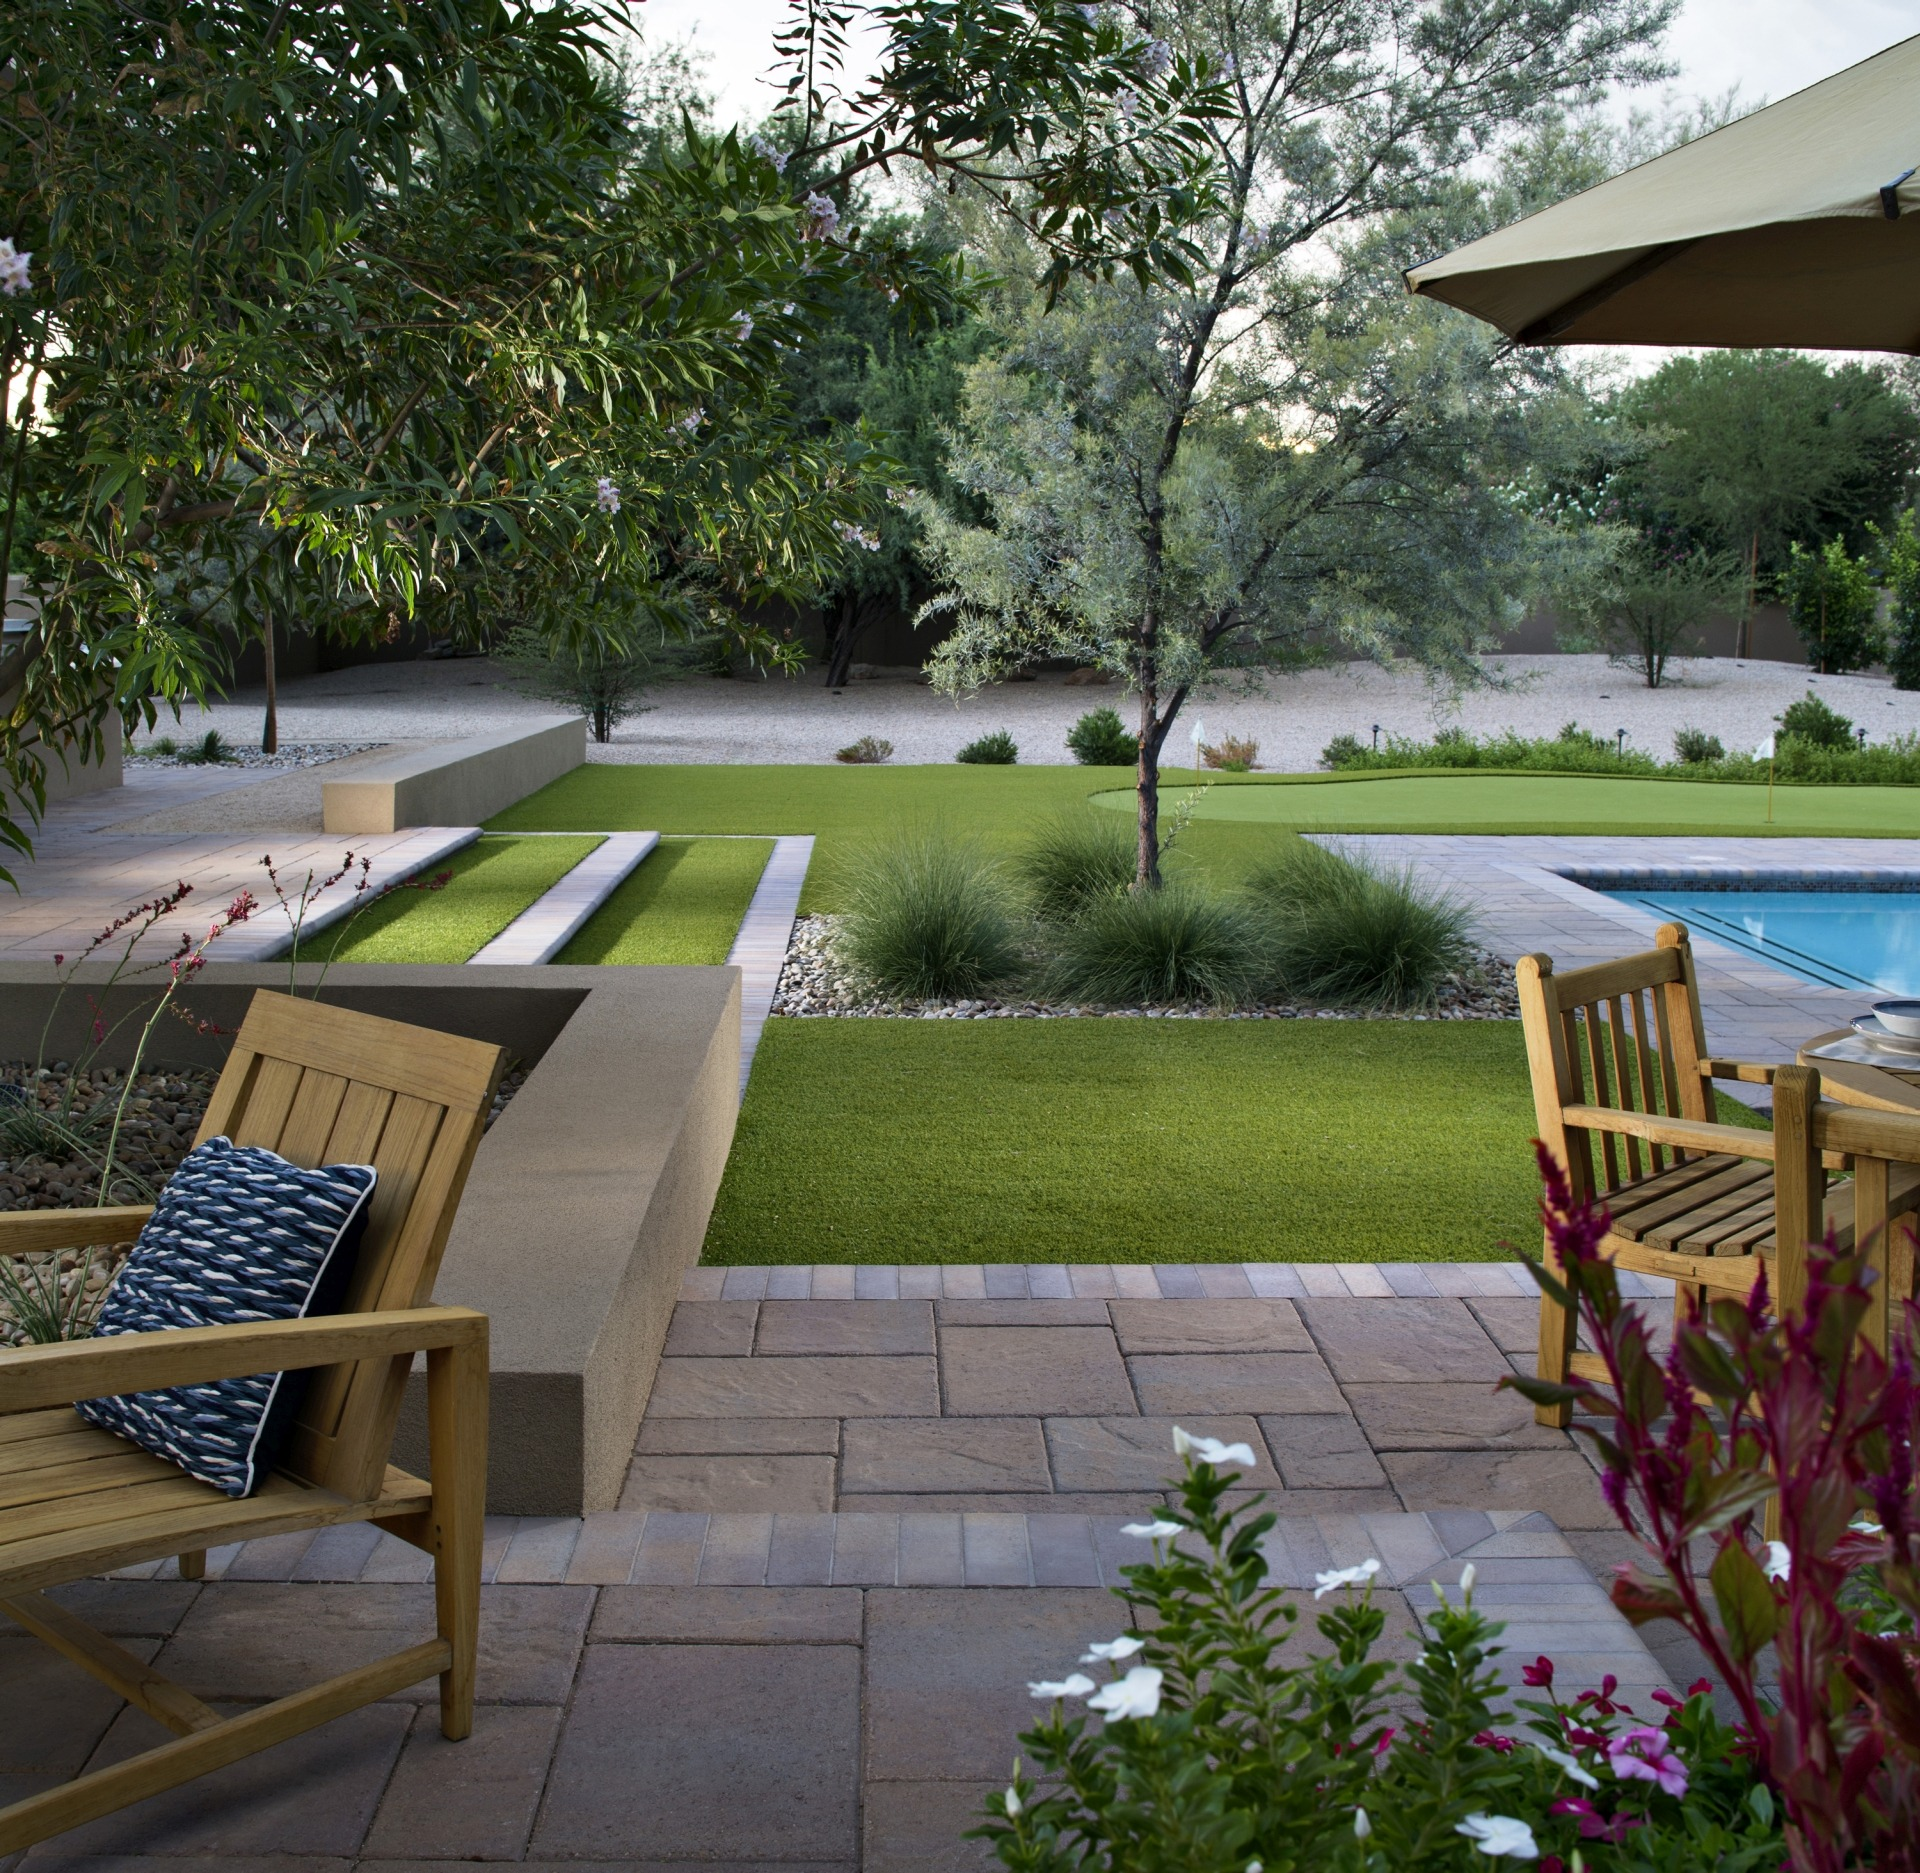 Artificial Grass and Paving Stones